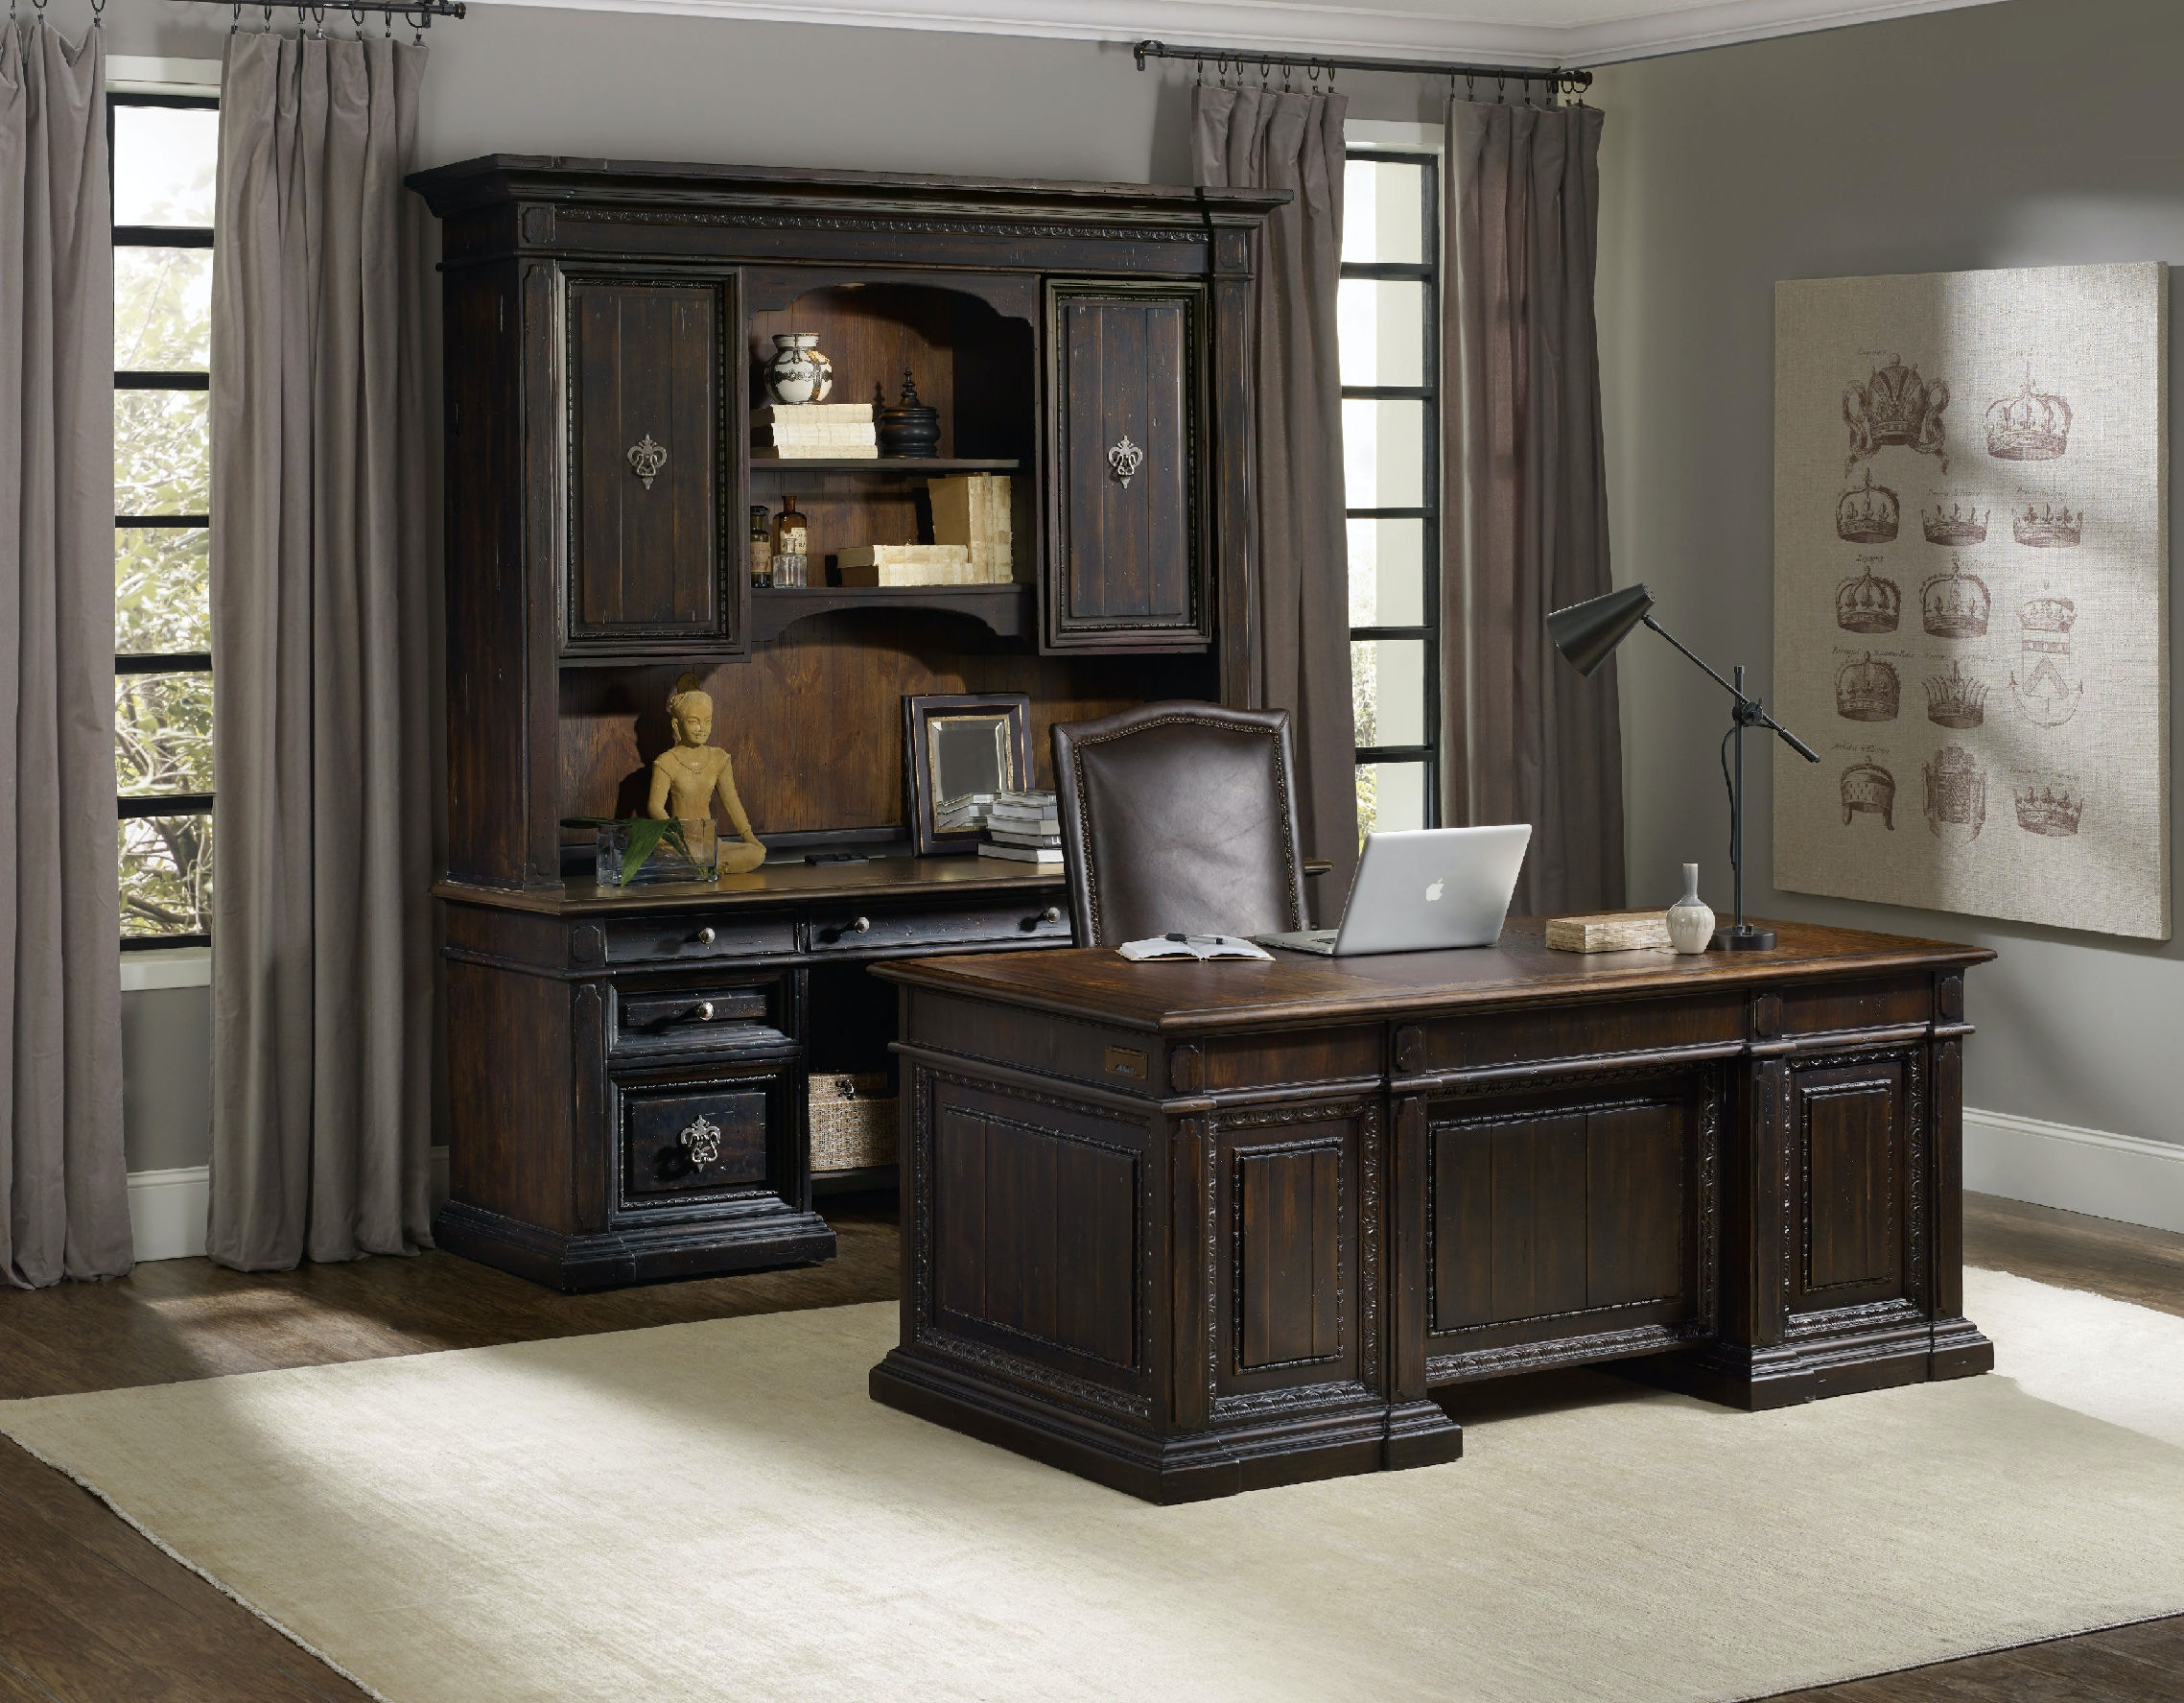 Executive Office Furniture: Hooker Furniture Home Office Treviso Executive Desk 5374-10563